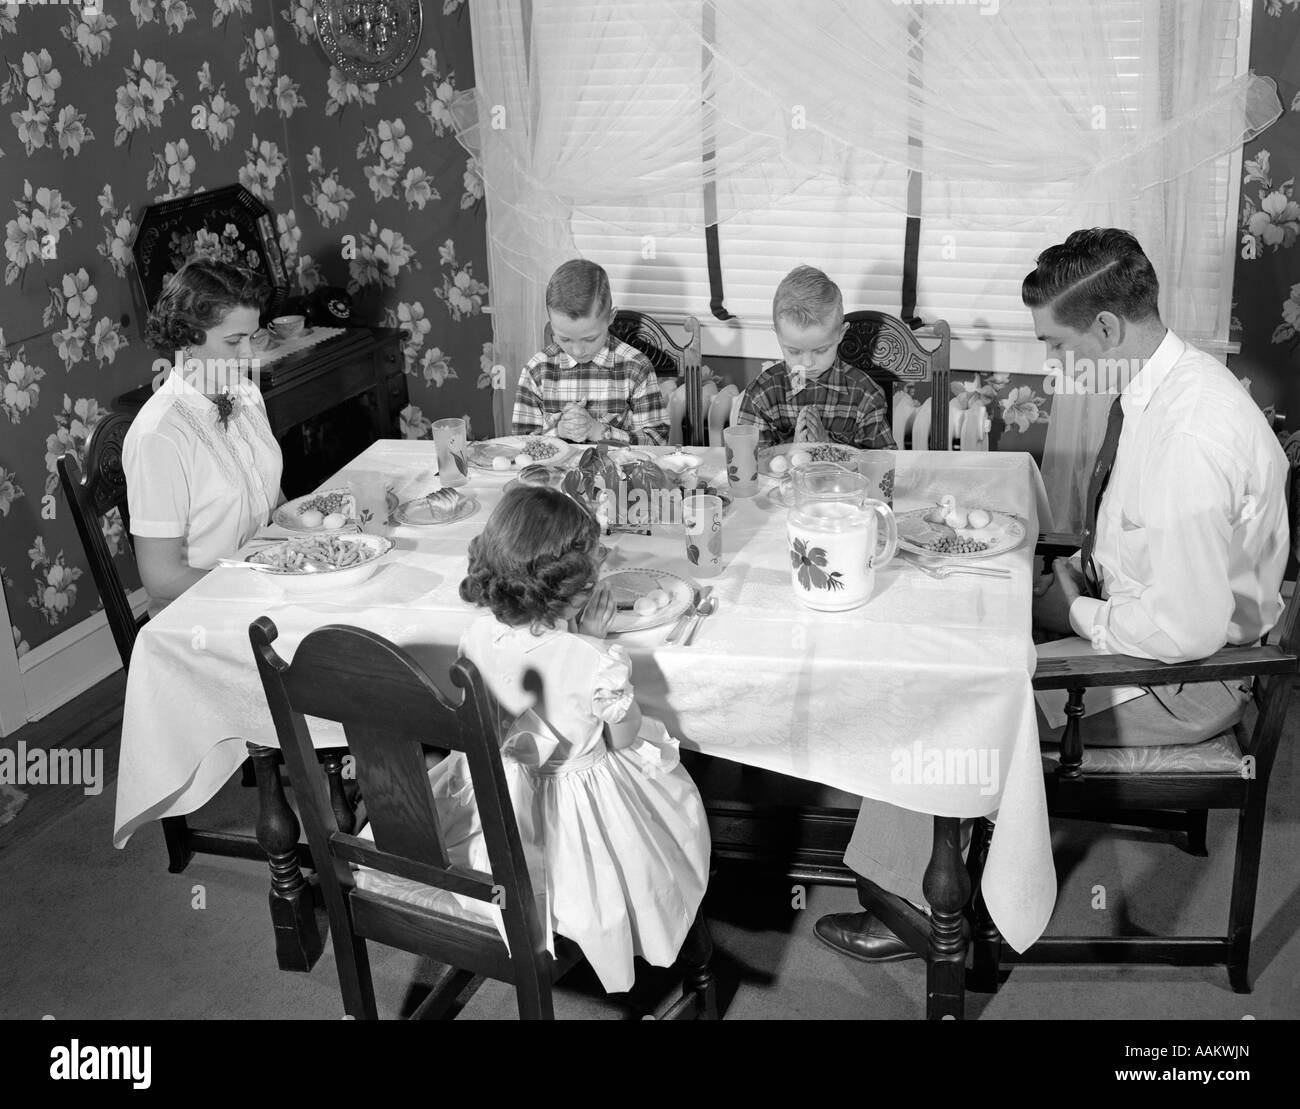 1950s FAMILY OF 5 MOM DAD 3 KIDS SITTING AT DINING ROOM TABLE SAYING GRACE  WITH HEADS BOWED